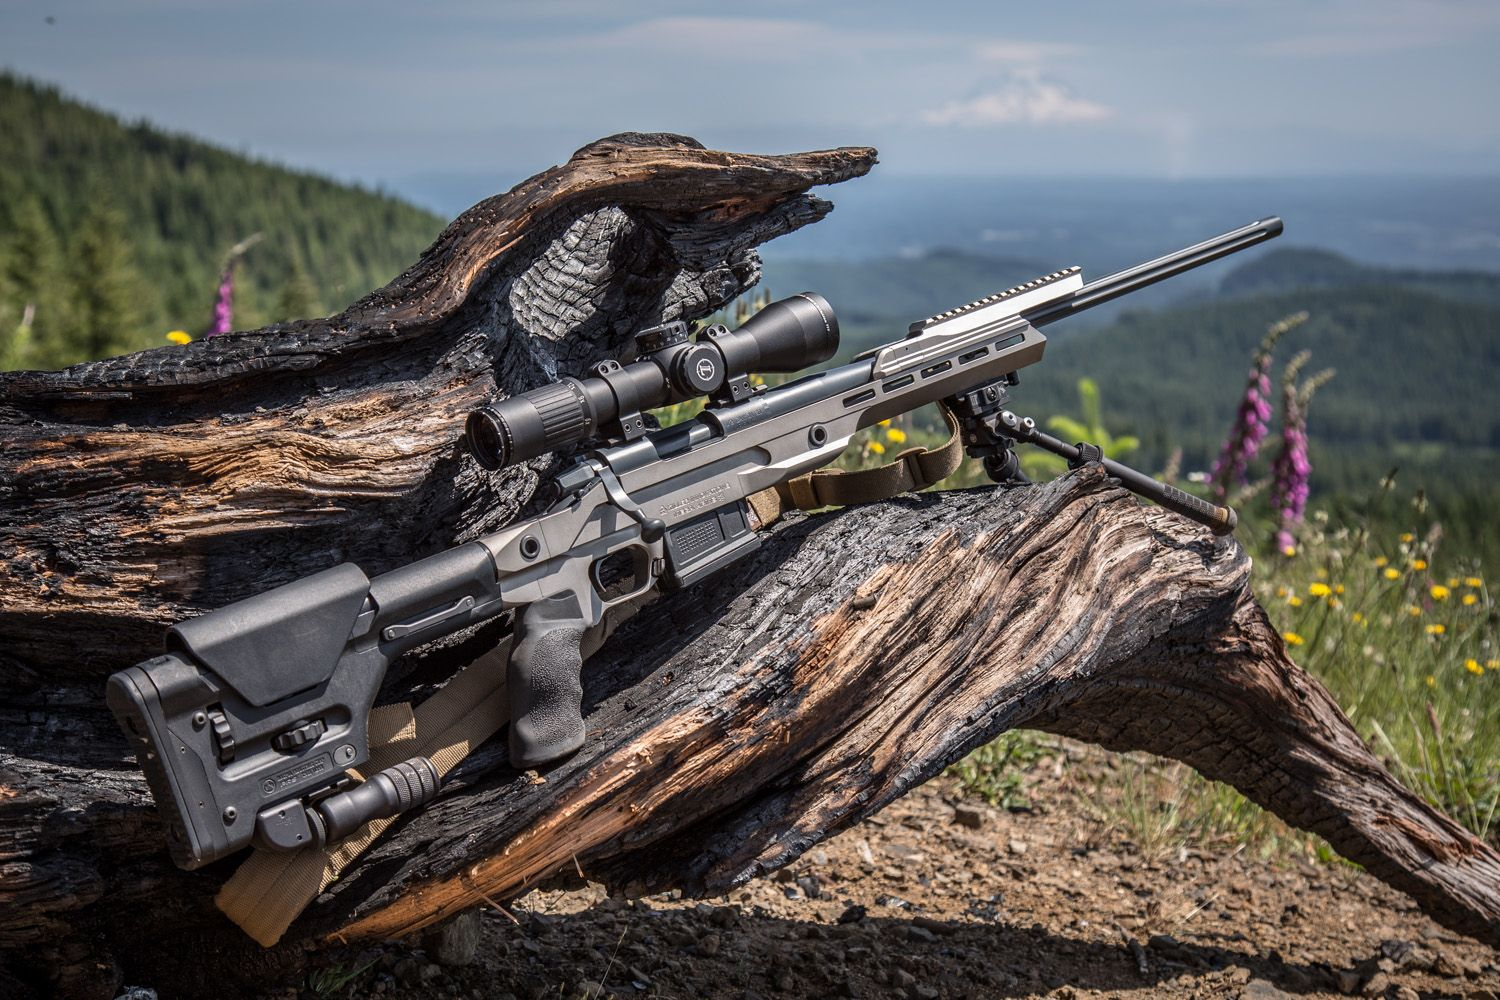 Killer Innovations Nickel Boron Orias Chassis, Cross Canyon Arms 308 barreled action, Leupold Optics Mark 6 3-18 scope, Warne Scope Mounts top rail and 34 mm rings, B&T Industries atlas bipod and mono pod, Magpul PRS Stock and 762 AC Pmag, Ergo Grips tactical deluxe and Grey Ghost Gear sling. OriasChassis.com